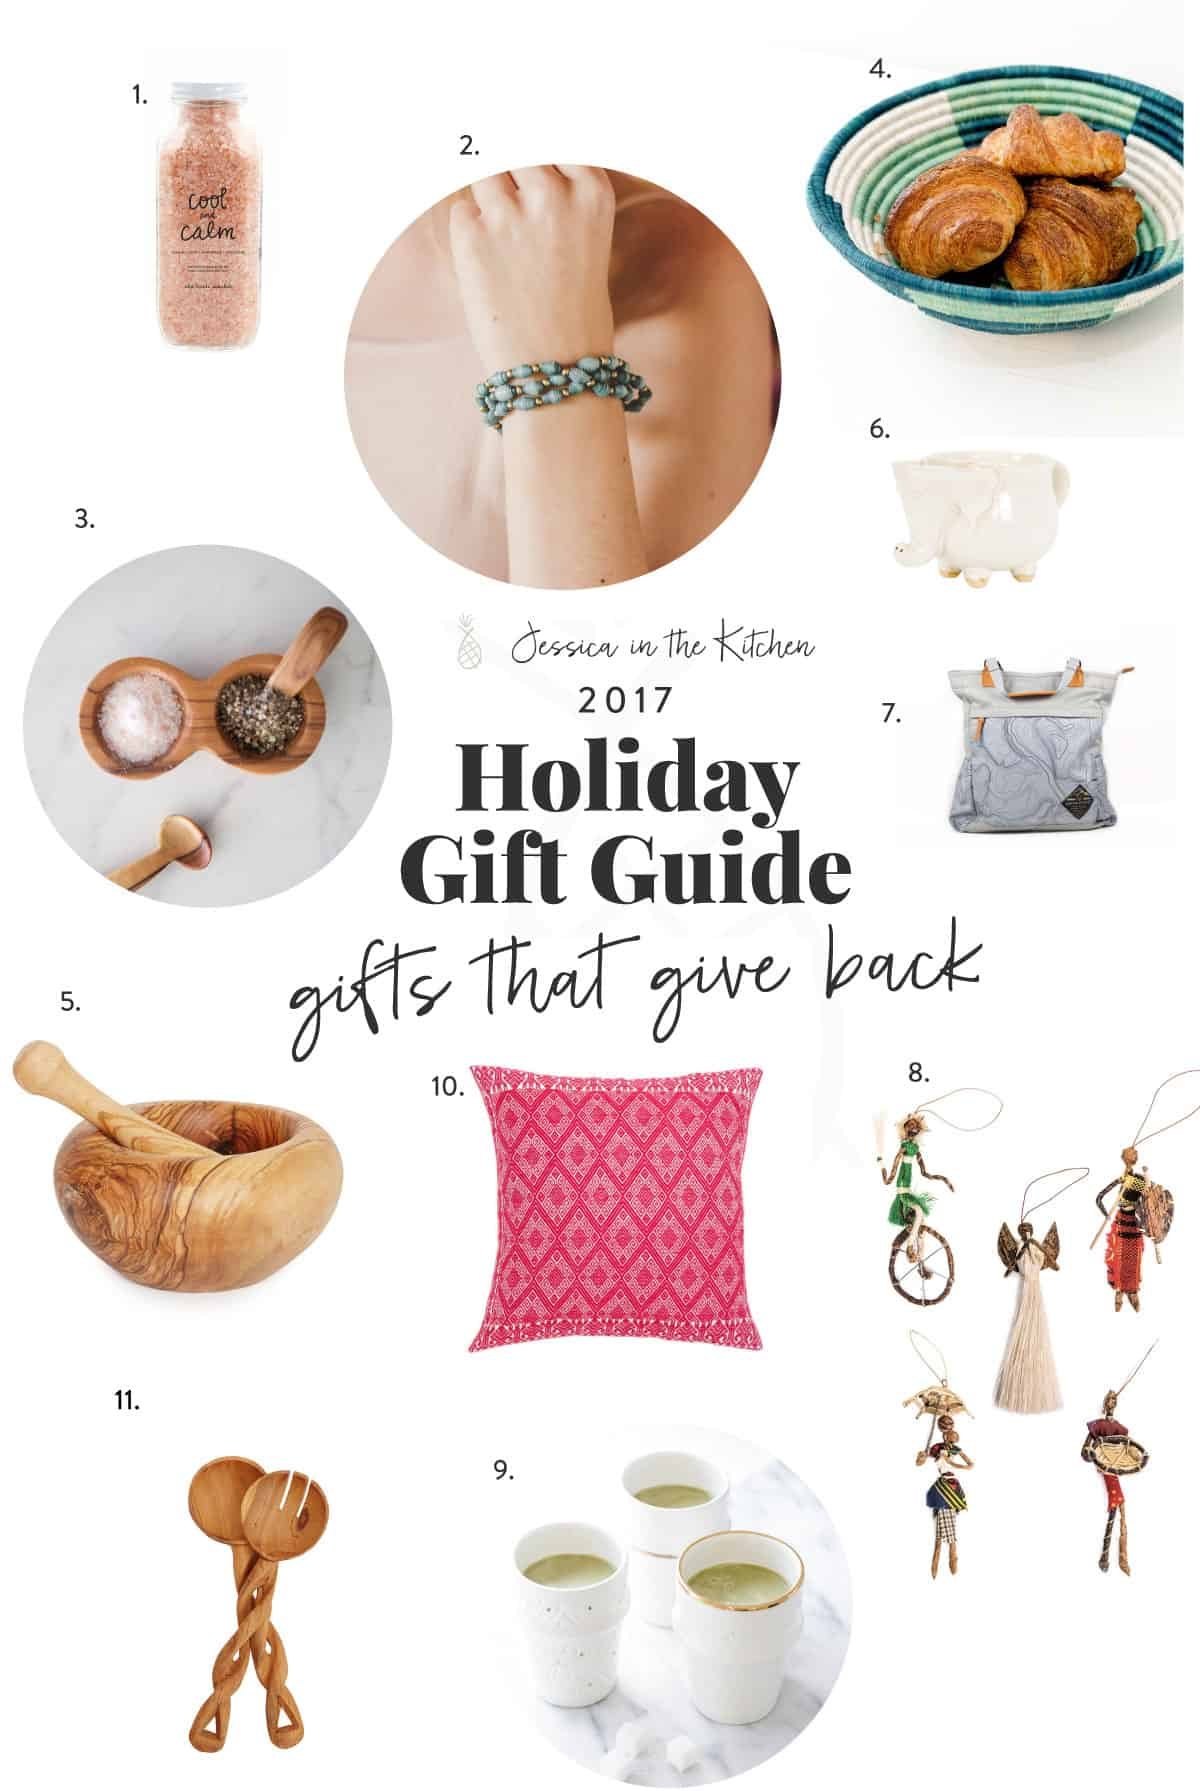 Holiday gift guide text with images of gifts around it.